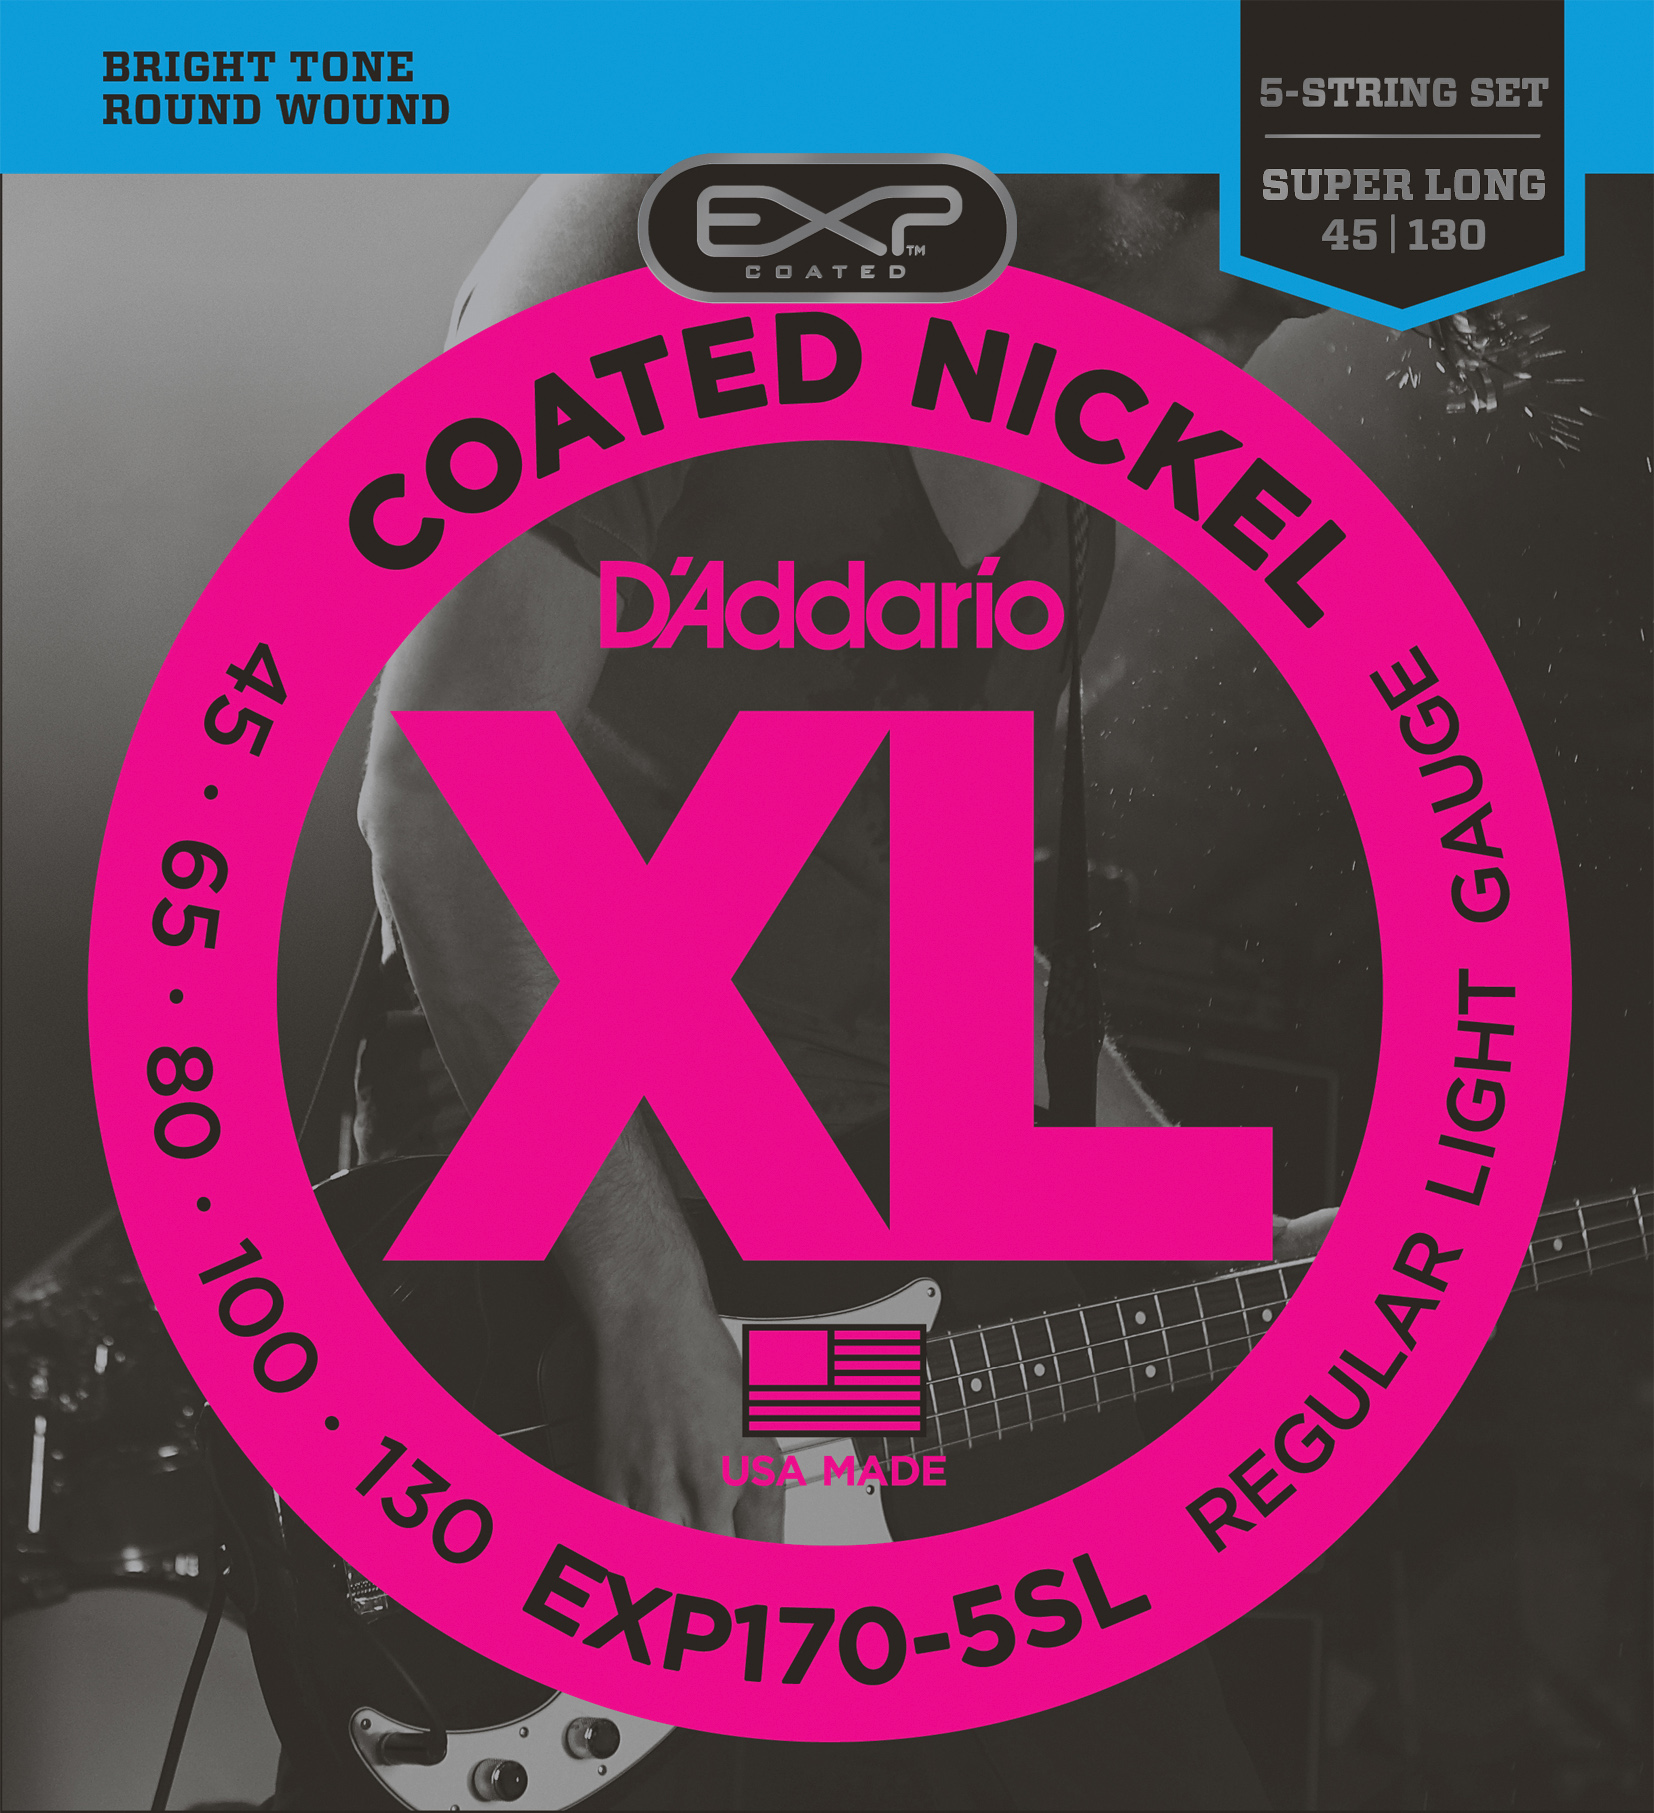 D'Addario EXP170-5SL Coated 5-String Bass Guitar Strings, Light, 45-130, Super L...